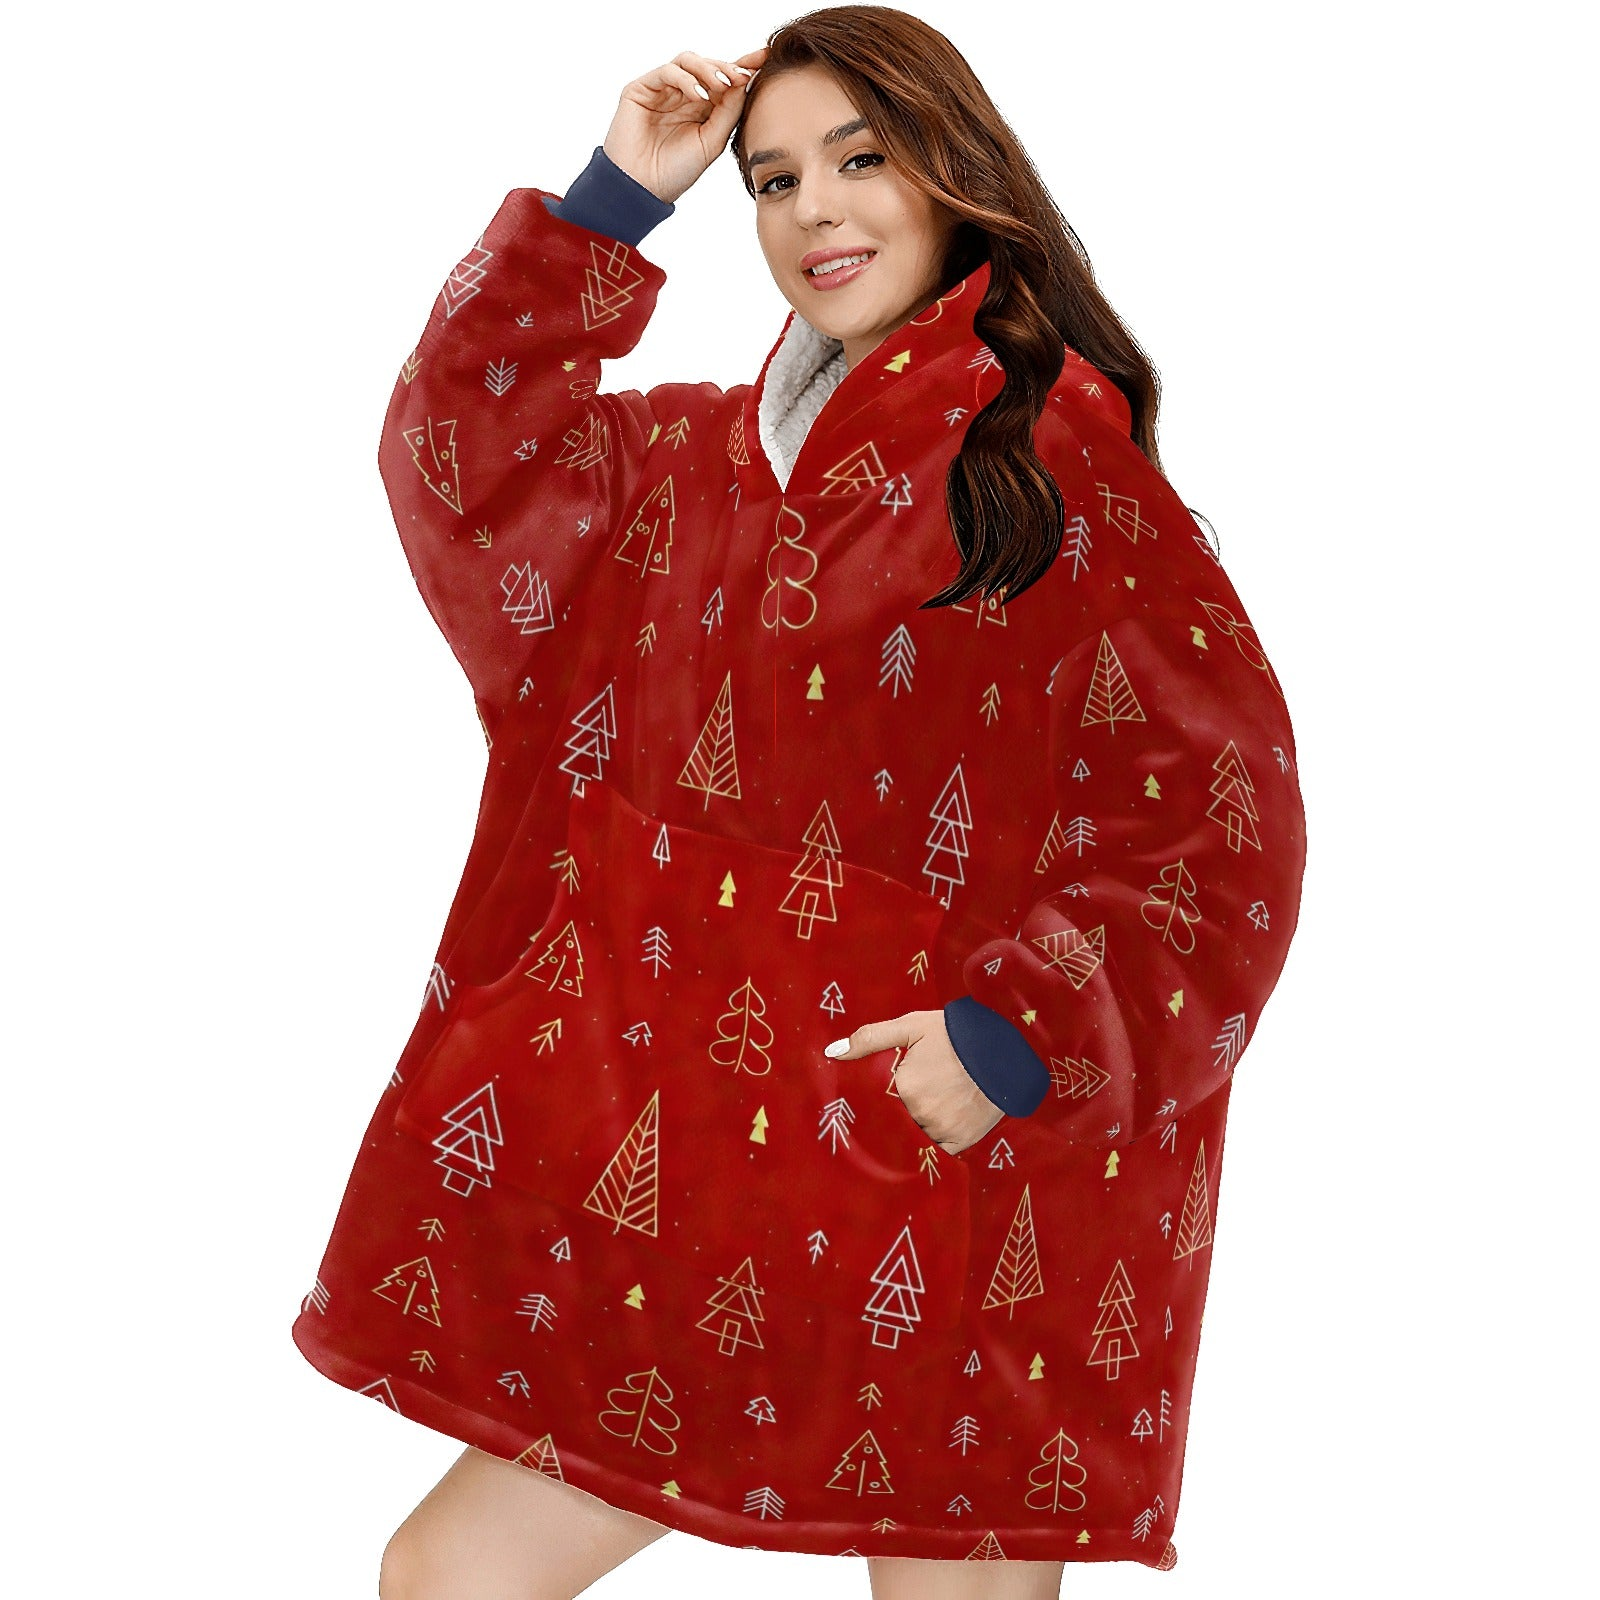 Red Background With Gold Christmas Tree Pattern Hoodie Blanket Sweatshirt